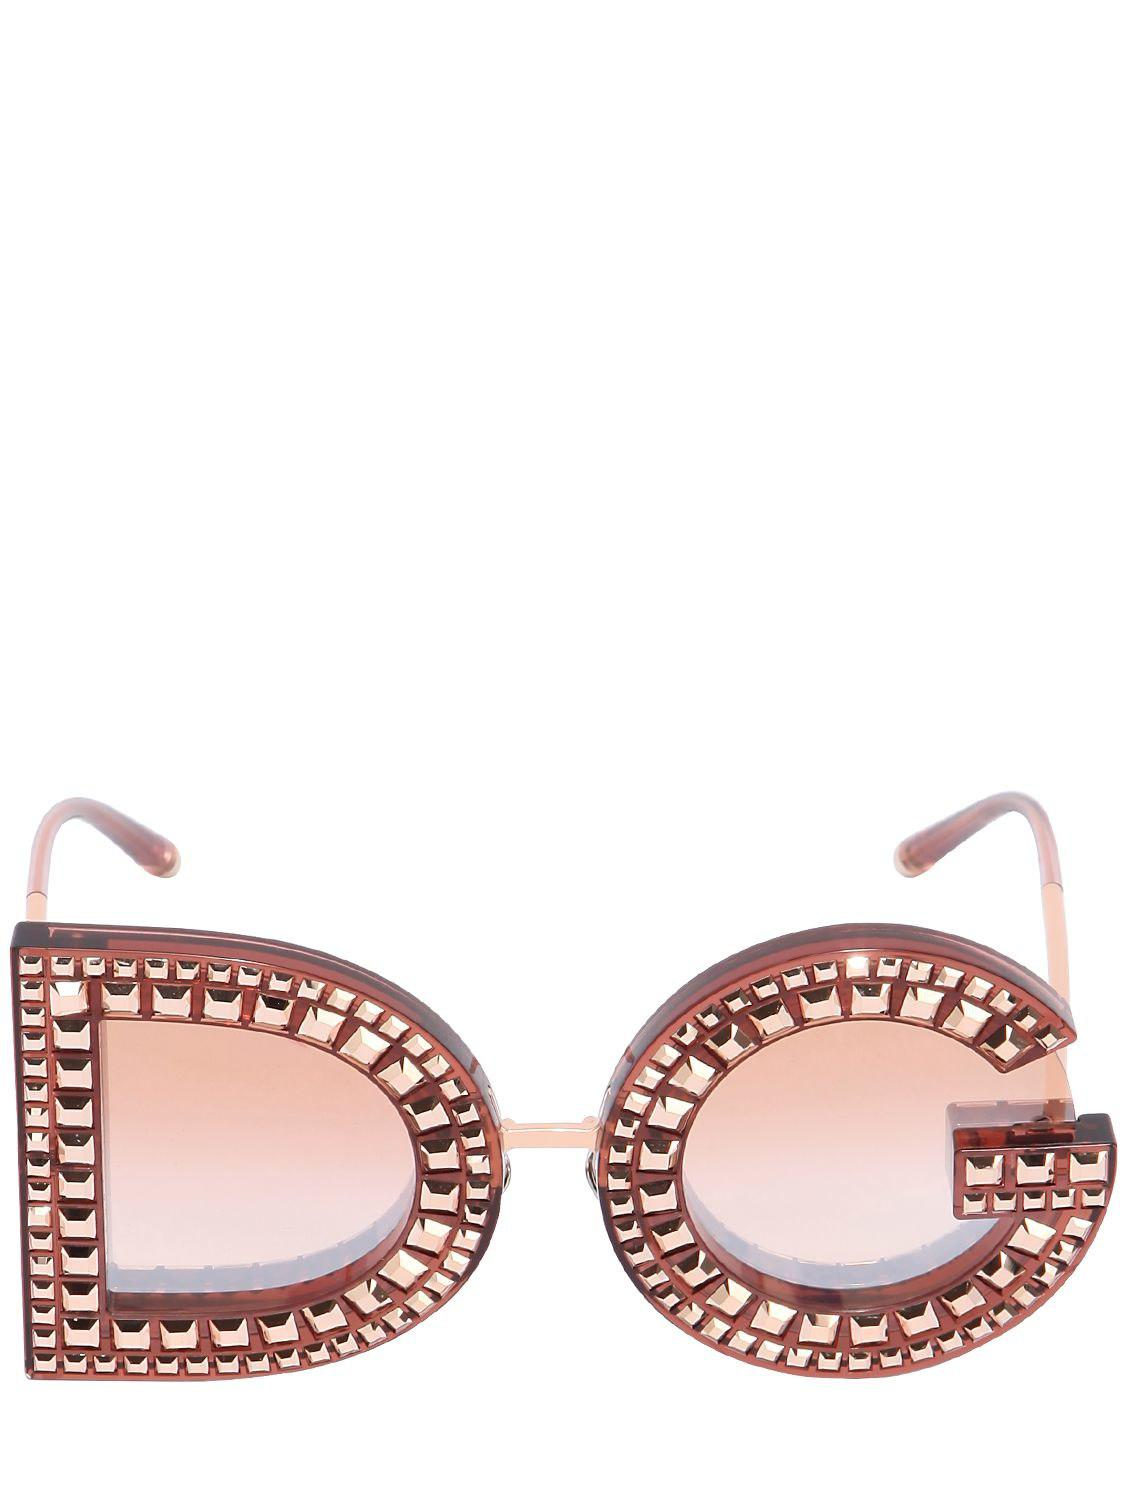 1c2849bcacb0 Lyst - Dolce   Gabbana Dg Crystals Embellished Sunglasses in Pink